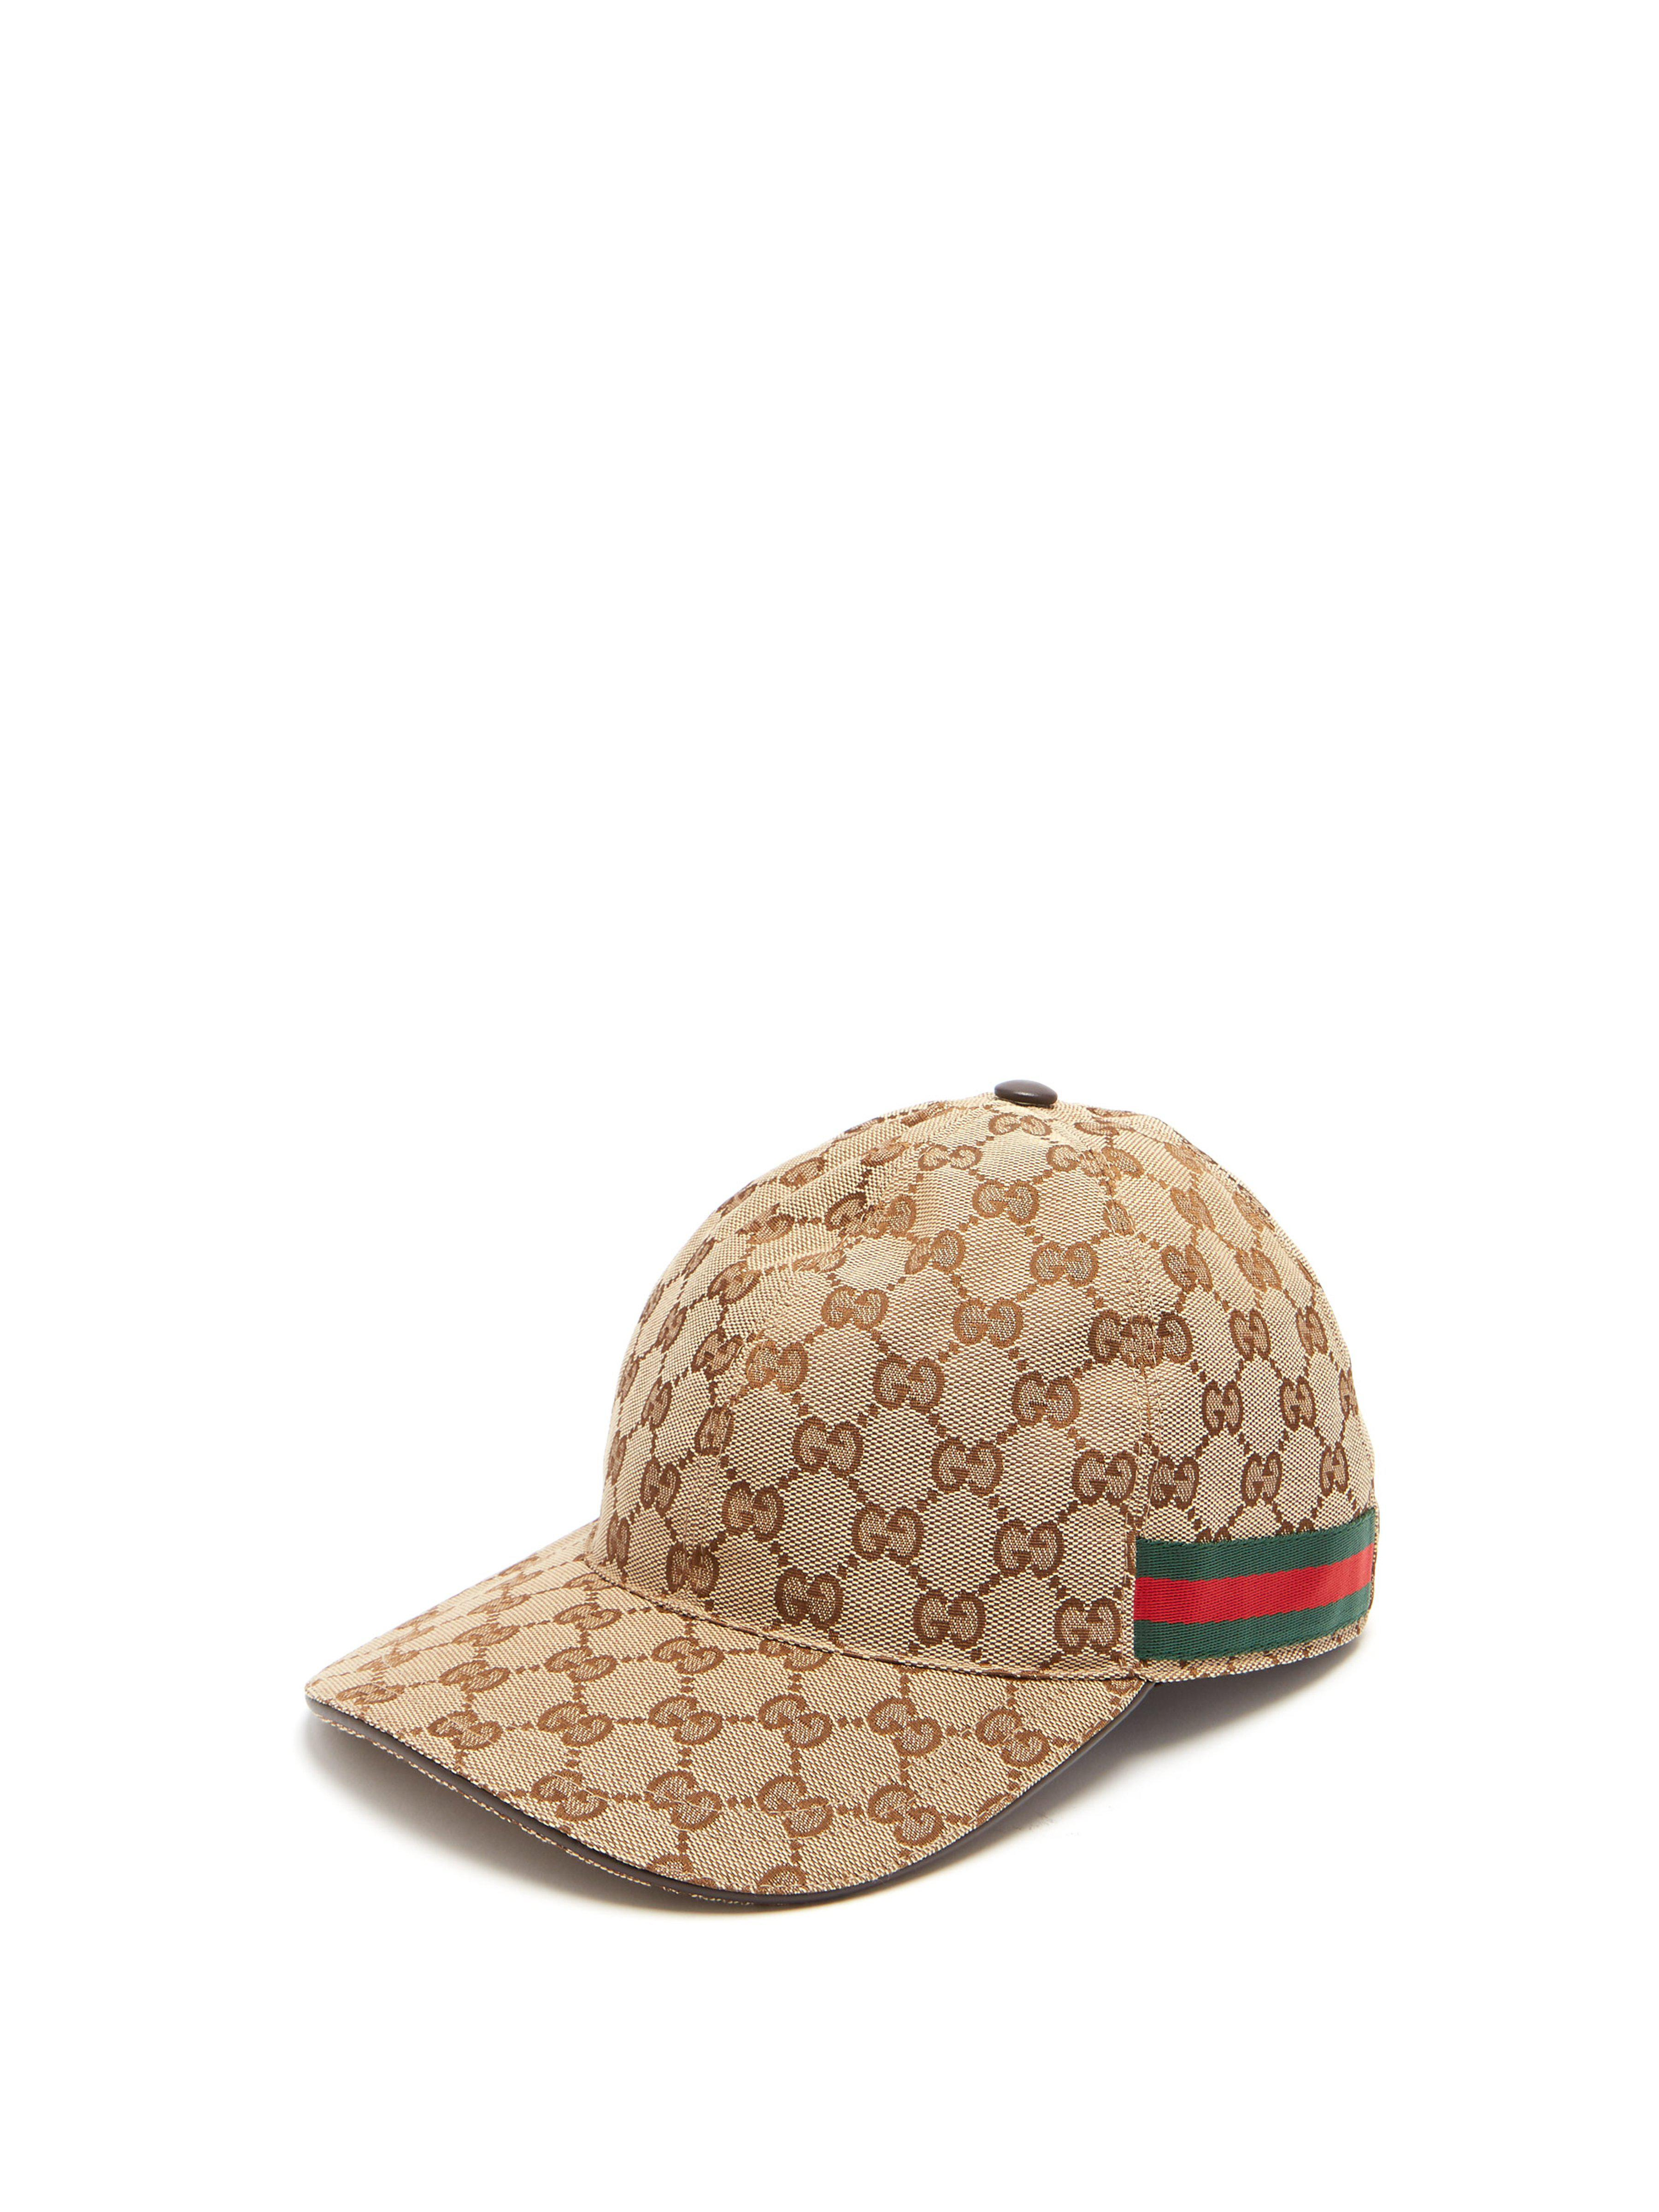 db83becb109 Gucci Web Stripe Gg Logo Baseball Cap in Natural for Men - Lyst